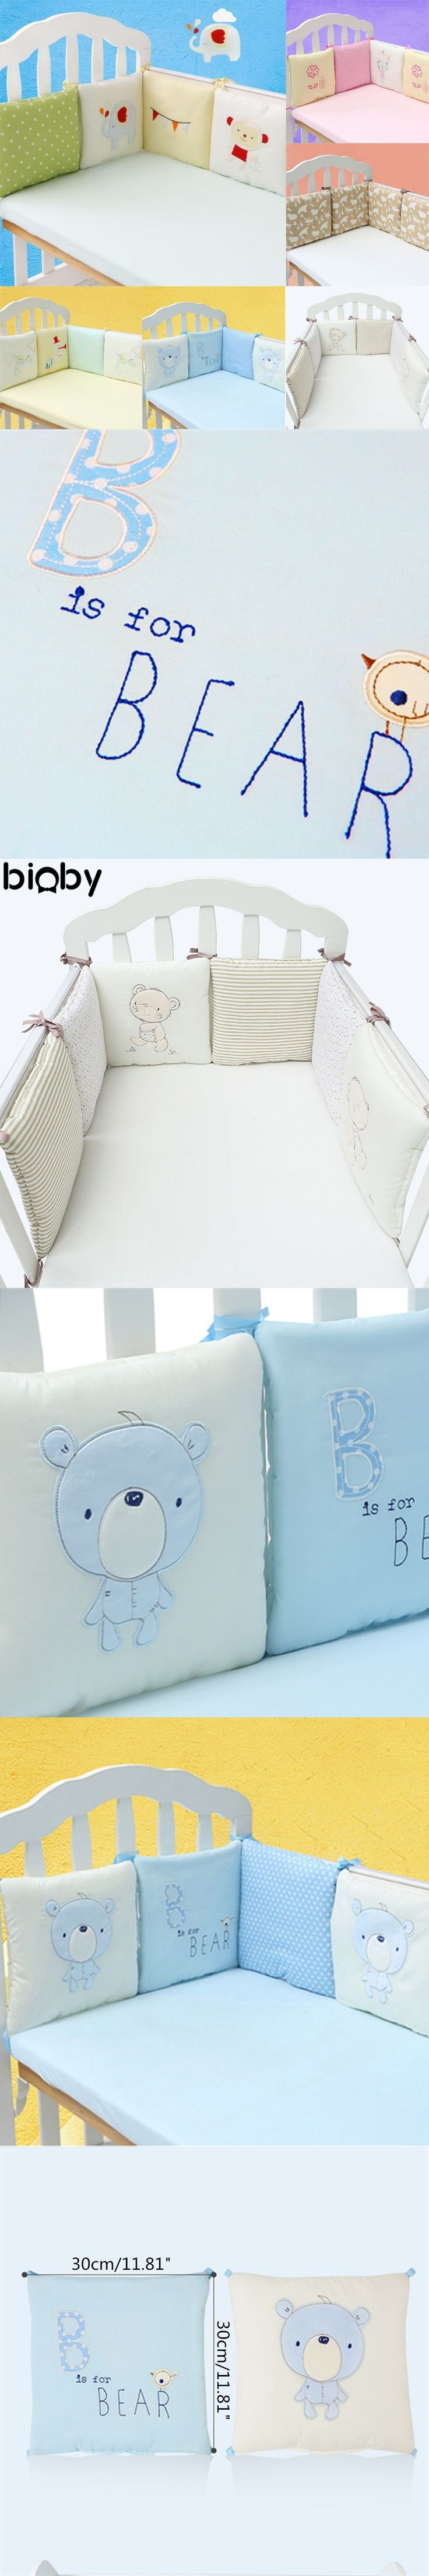 6Pcs/Set Baby Infant Cot Crib Bumper Safety Protector Toddler Nursery Bedding Set Baby Protection Cushion Pad Baby Care Supplies